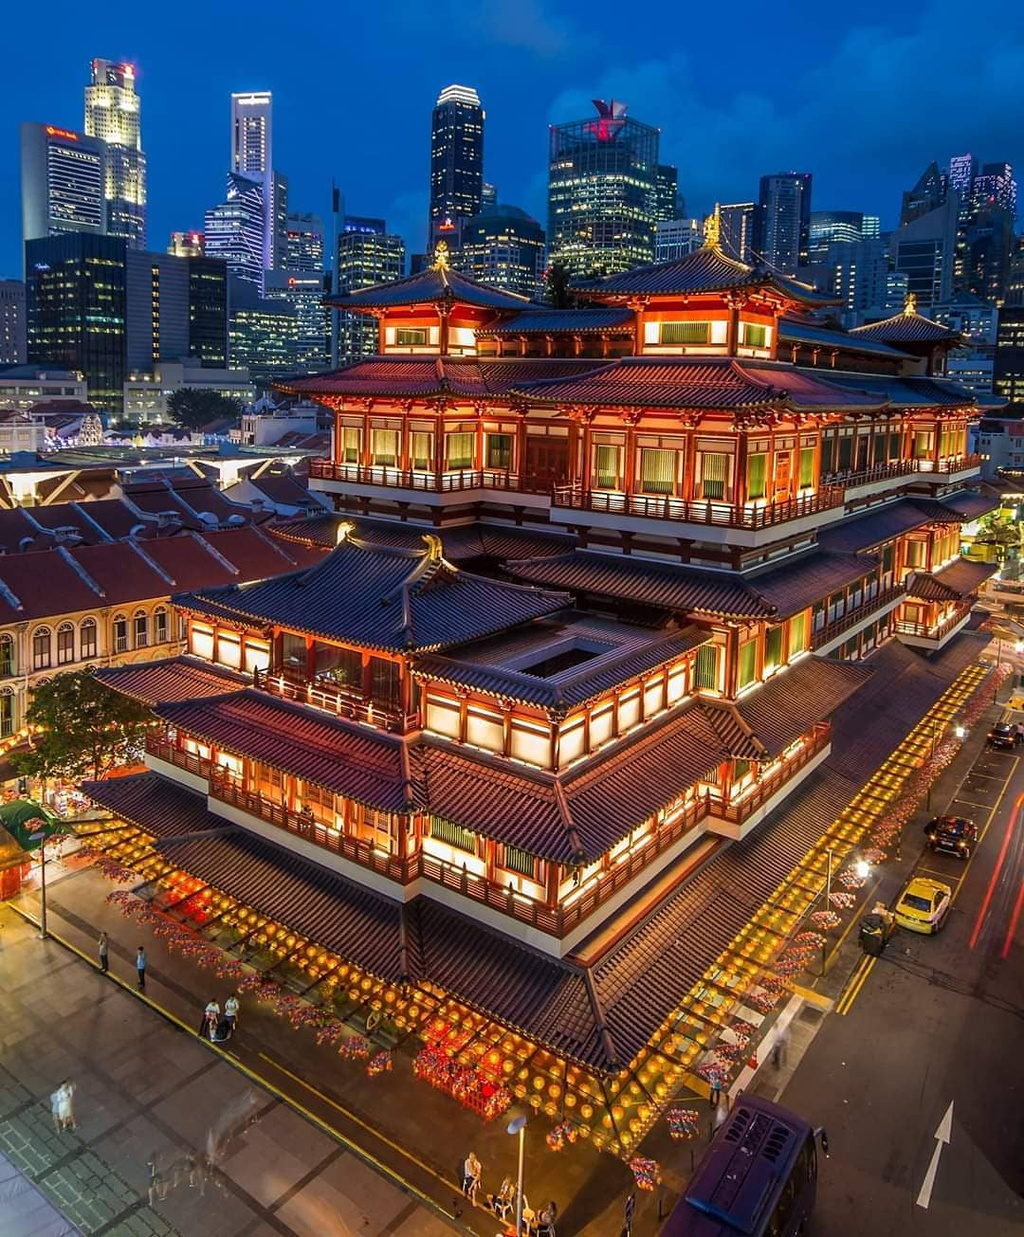 46 million temple in Singapore